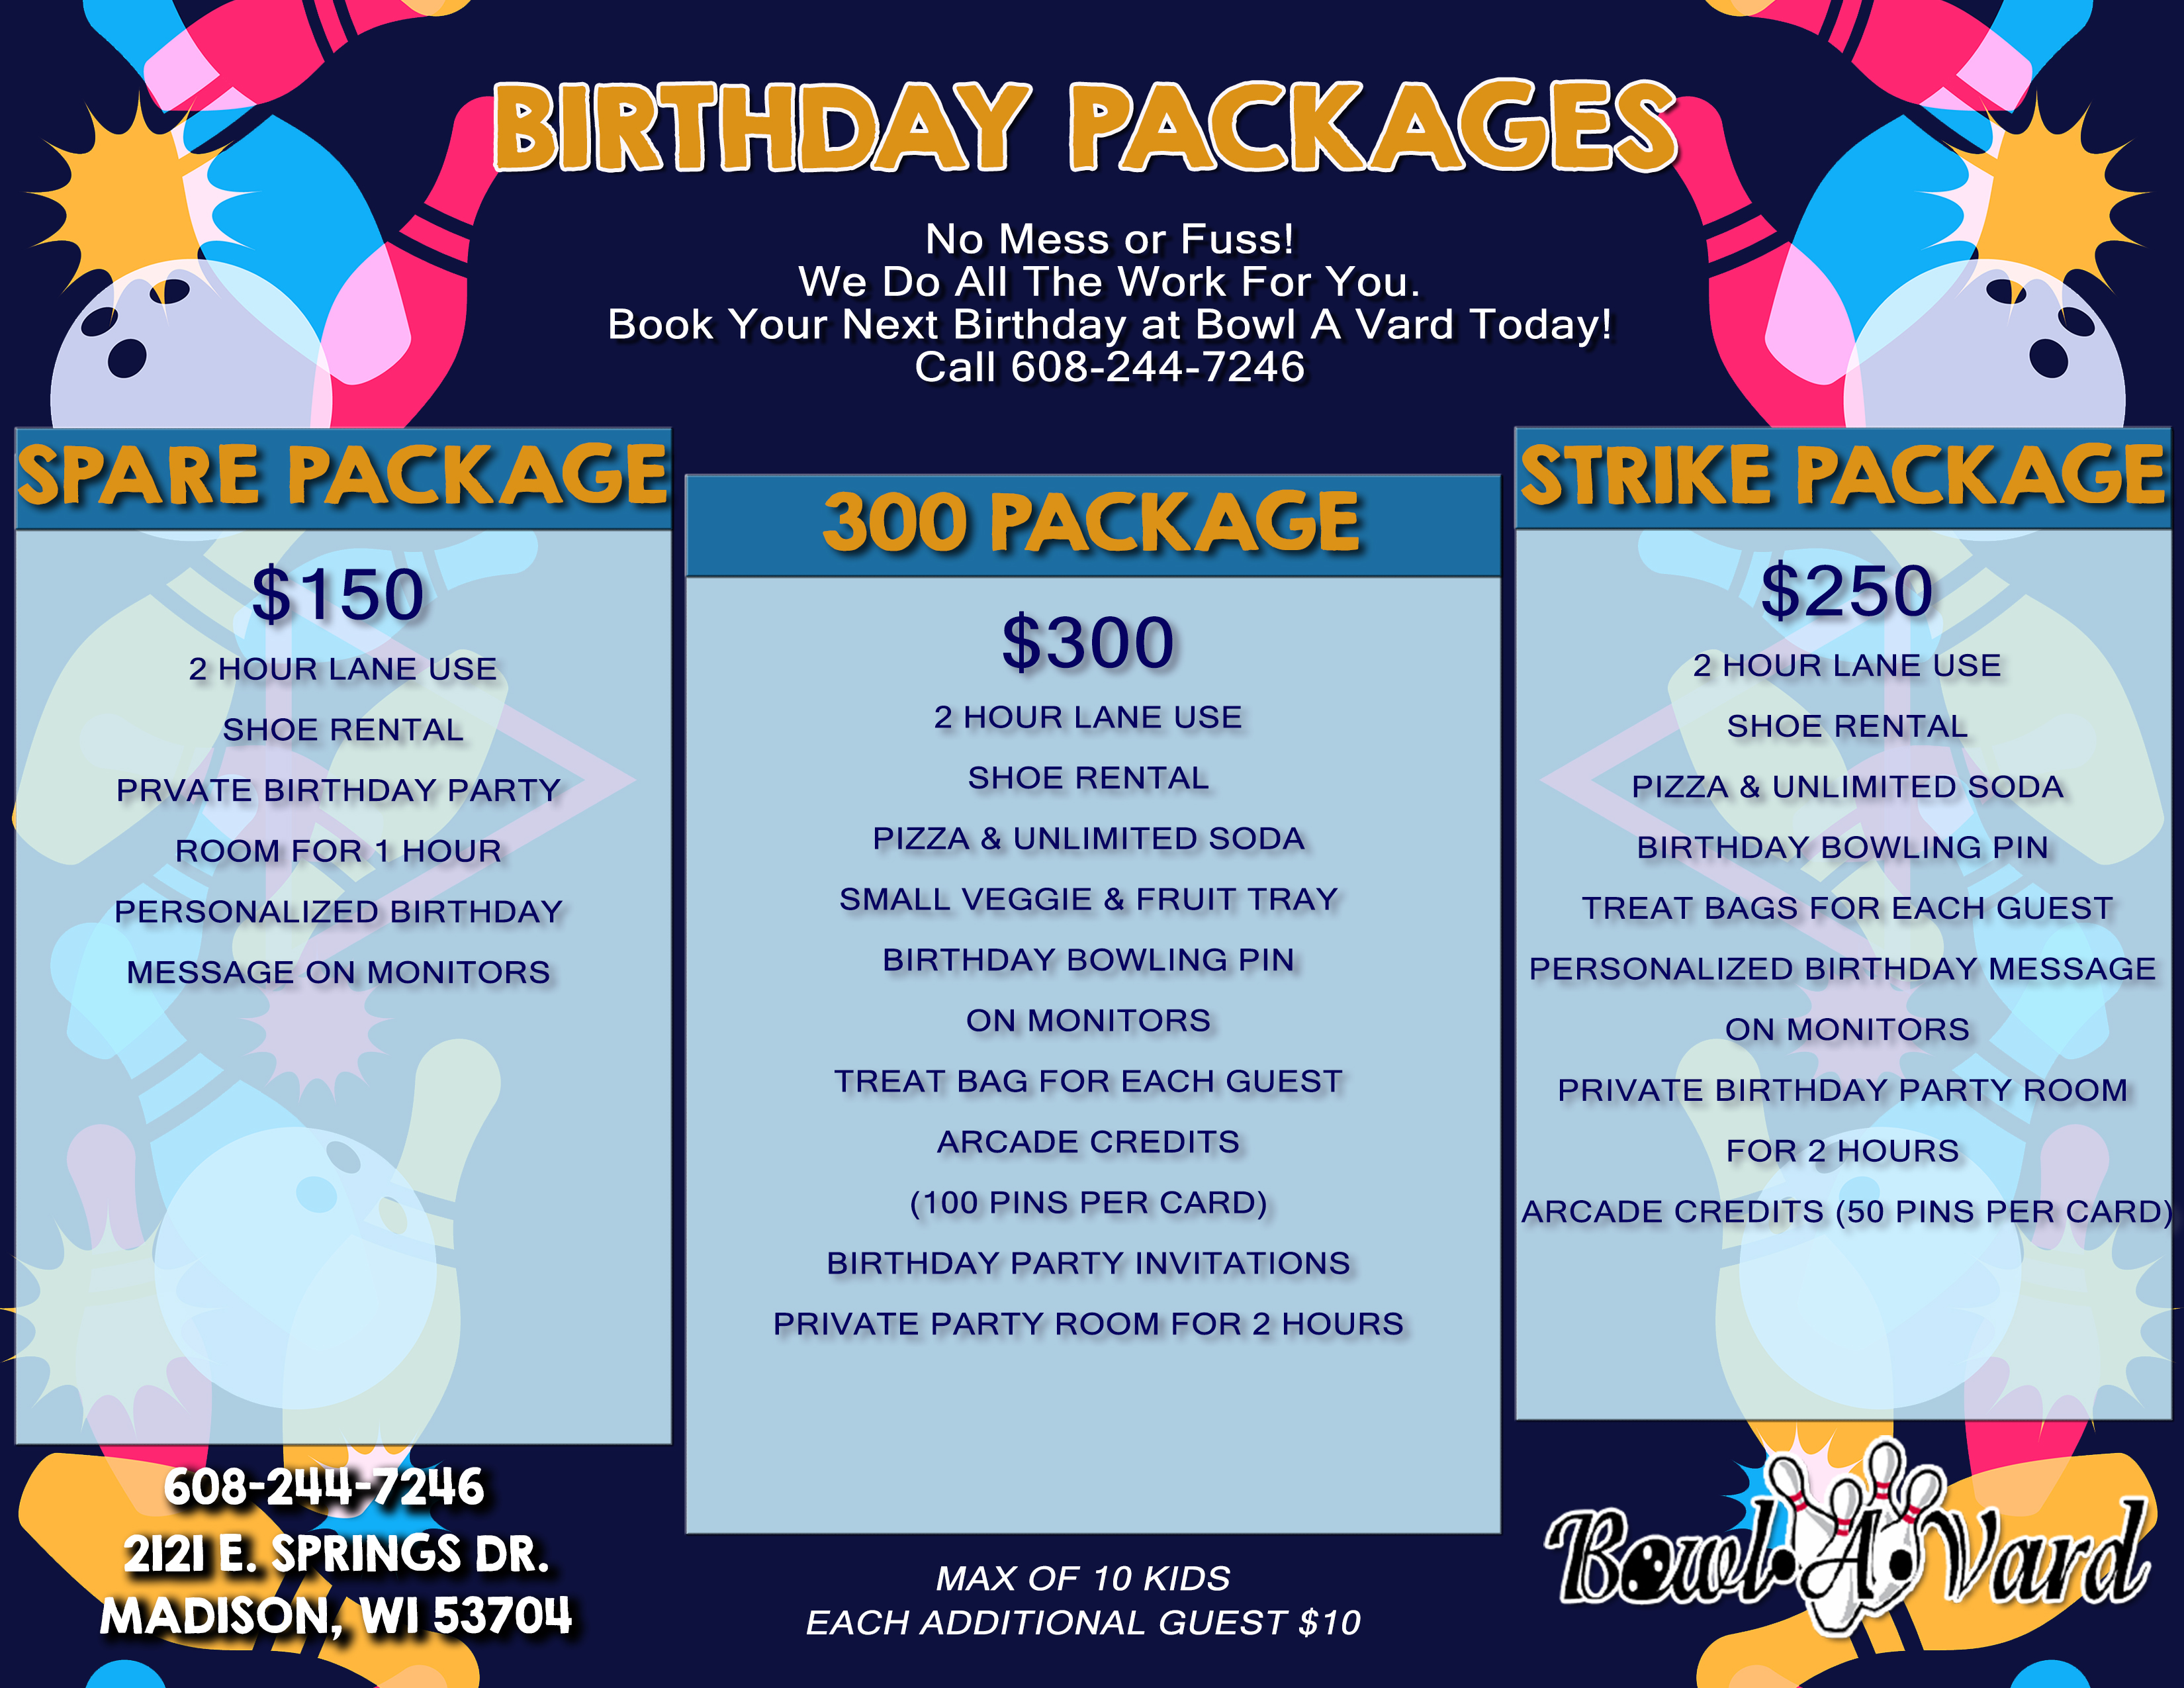 Kid's Birthday Packages No mess or fuss! We do all the work for you.  Book your next birthday at Bowl A Vard today.  Call 608-244-7246 Spare Package $10.50 Per Child 1 Hour Lane Use Shoe Rental Birthday bowling pin for guests to sign Personalized Birthday message on monitors  Strike Package $14.50 Per Child 2 Hour Lane use Shoe Rental Pizza Soda Birthday bowling pin for guests to sign Personalized Birthday message on monitors Treat bag for each guest Private birthday party room for 1 hour Arcade Credit (50 pins per card)  300 Package $18.50 Per Child 2 Hour Lane use Shoe Rental Pizza Soda Birthday bowling pin for guests to sign Personalized Birthday message on monitors Treat bag for each guest Arcade credits (100 pins per card) Birthday Party invitations Ice Cream Cups